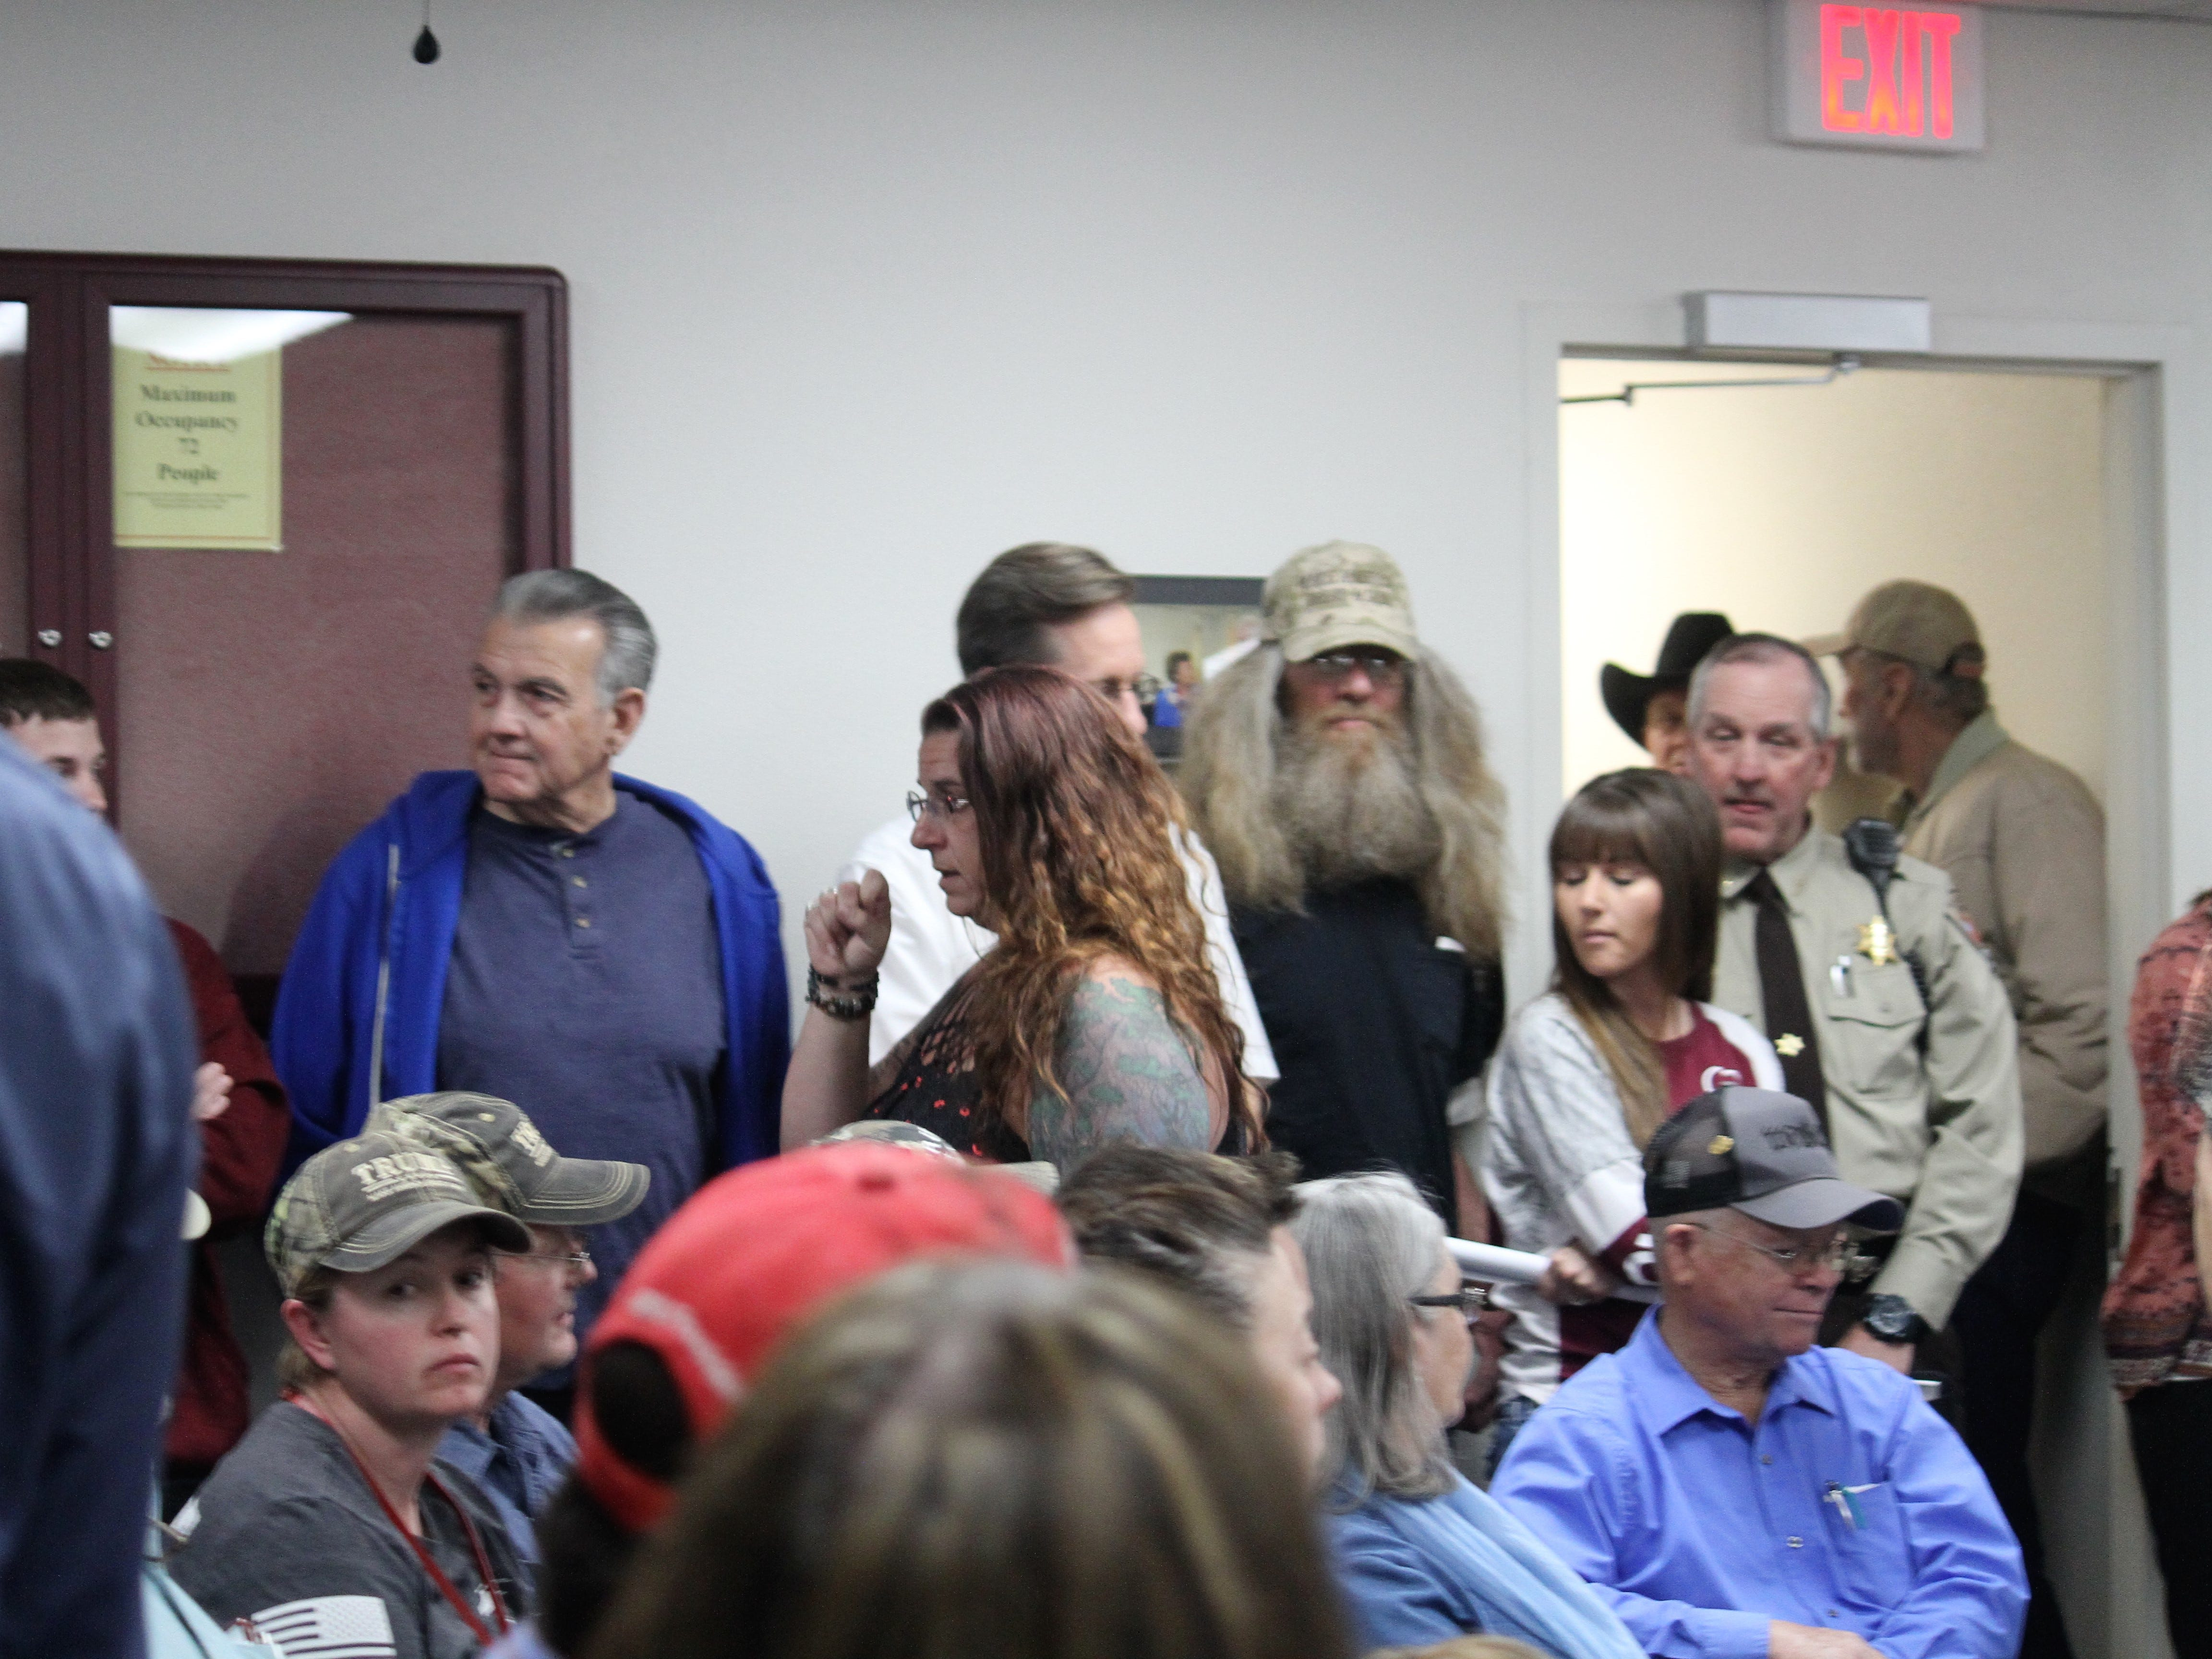 Lori Bies among the crowd headed to the Flickinger Center for the Performing Arts from the Otero County Commission Chambers Monday night. The Commission chambers were standing-room only with people lined up in the hallway outside.